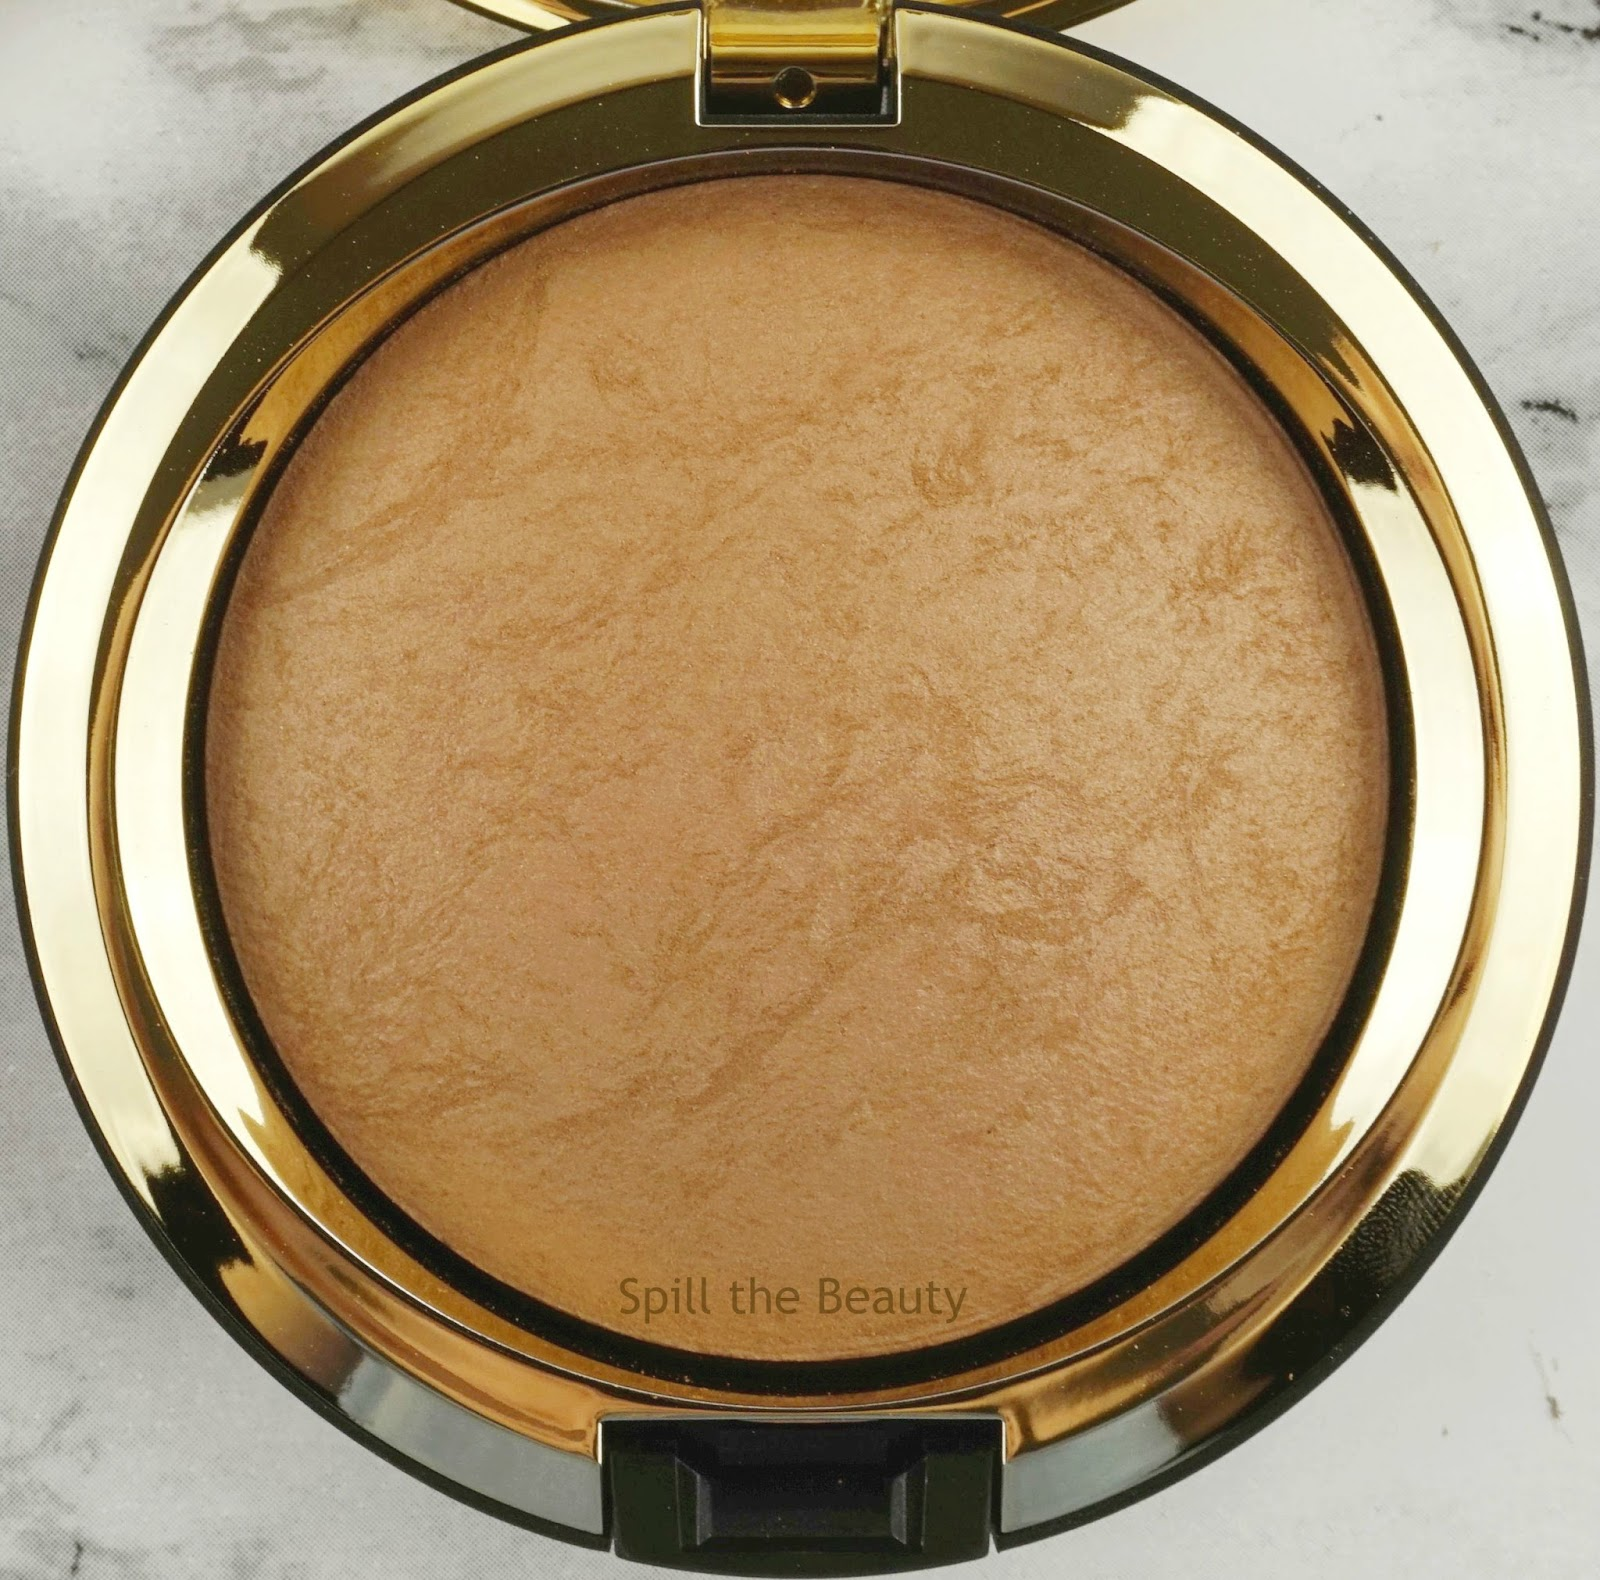 mac caitlyn jenner review swatches authentic red whirl compassion mineralize skinfinish natural